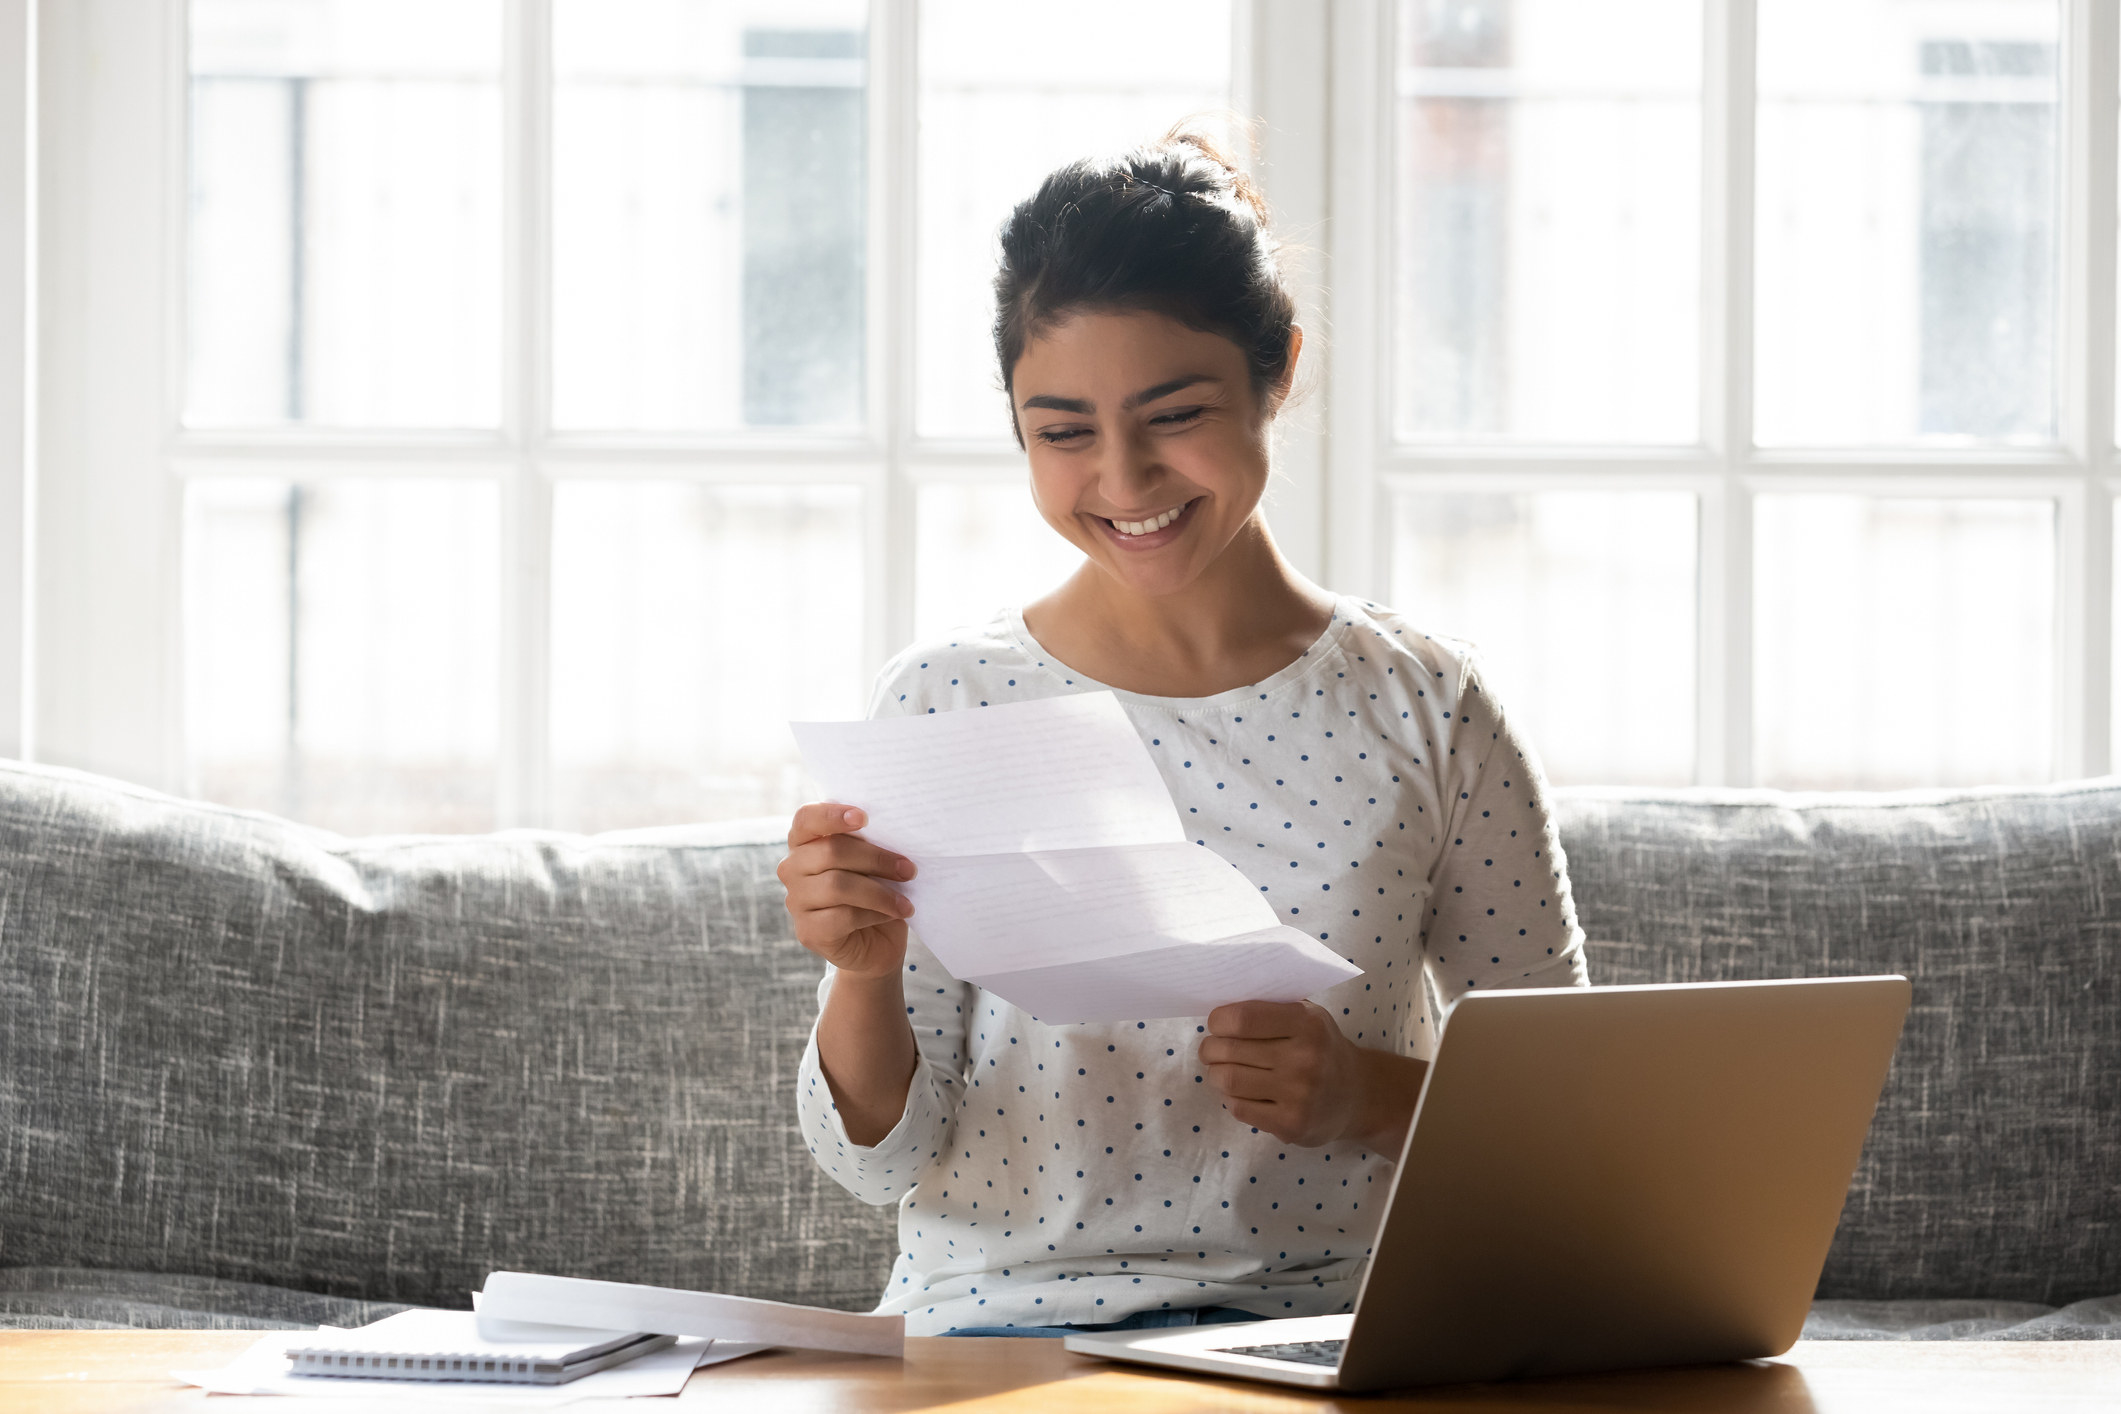 A woman smiling down at a college admissions letter